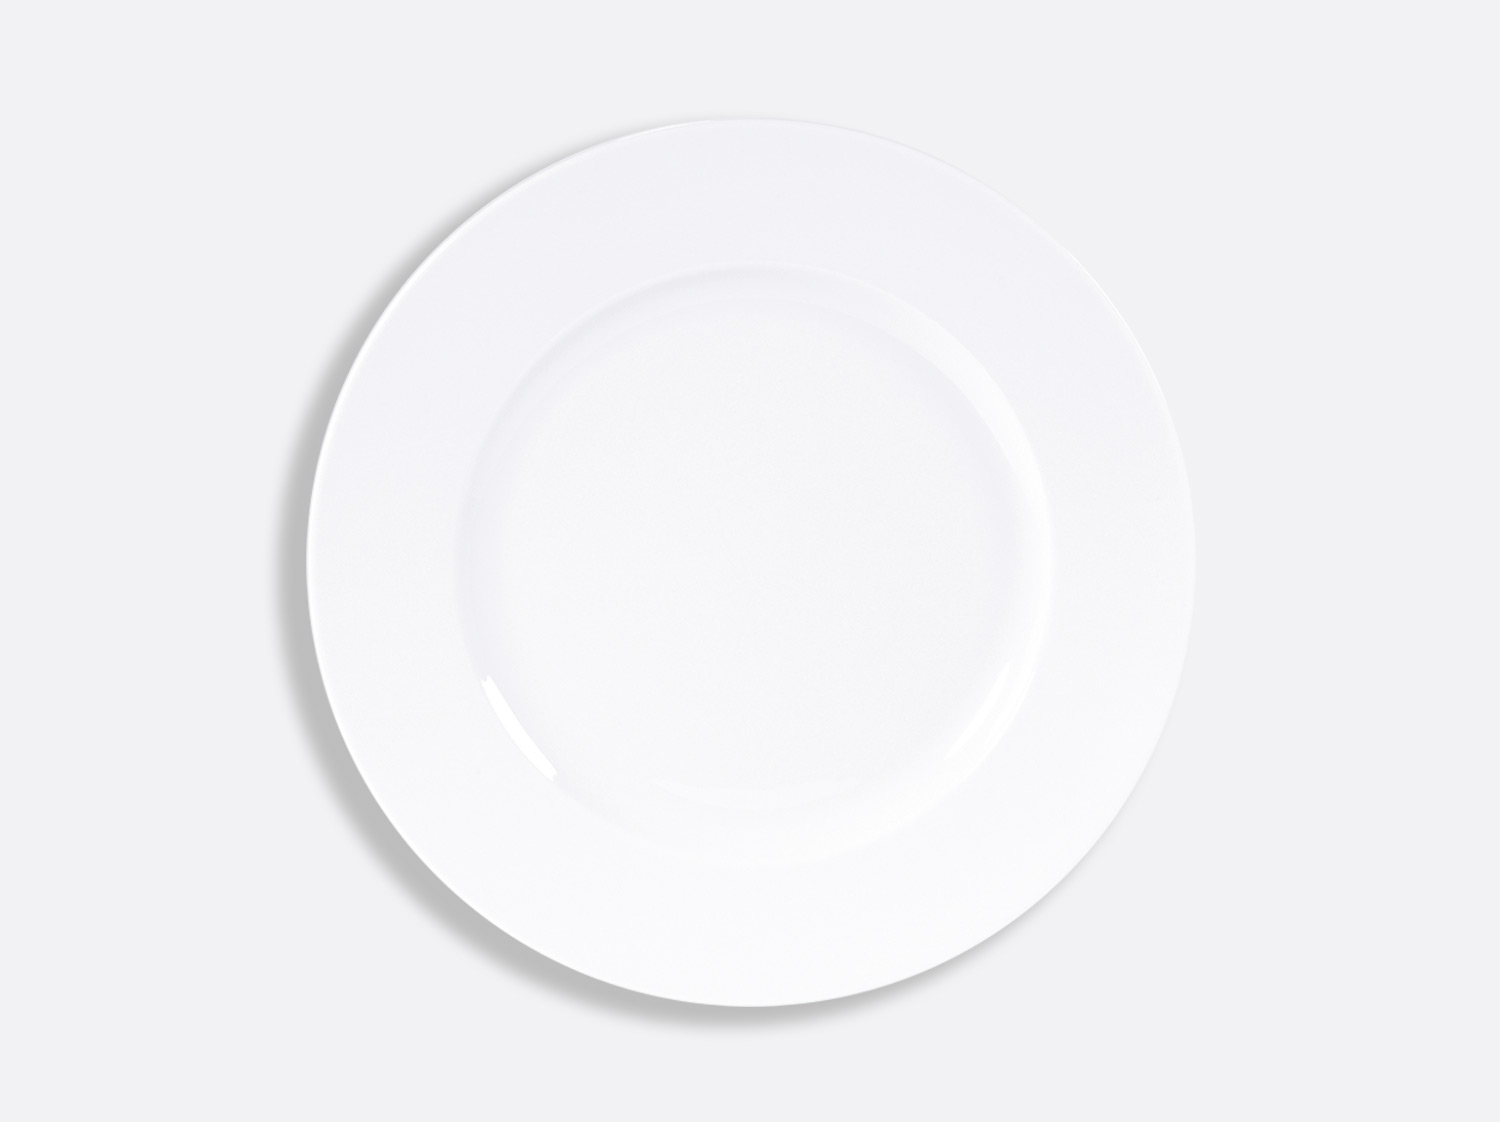 Assiette plate 26 cm en porcelaine de la collection PHOEBE BLANC Bernardaud